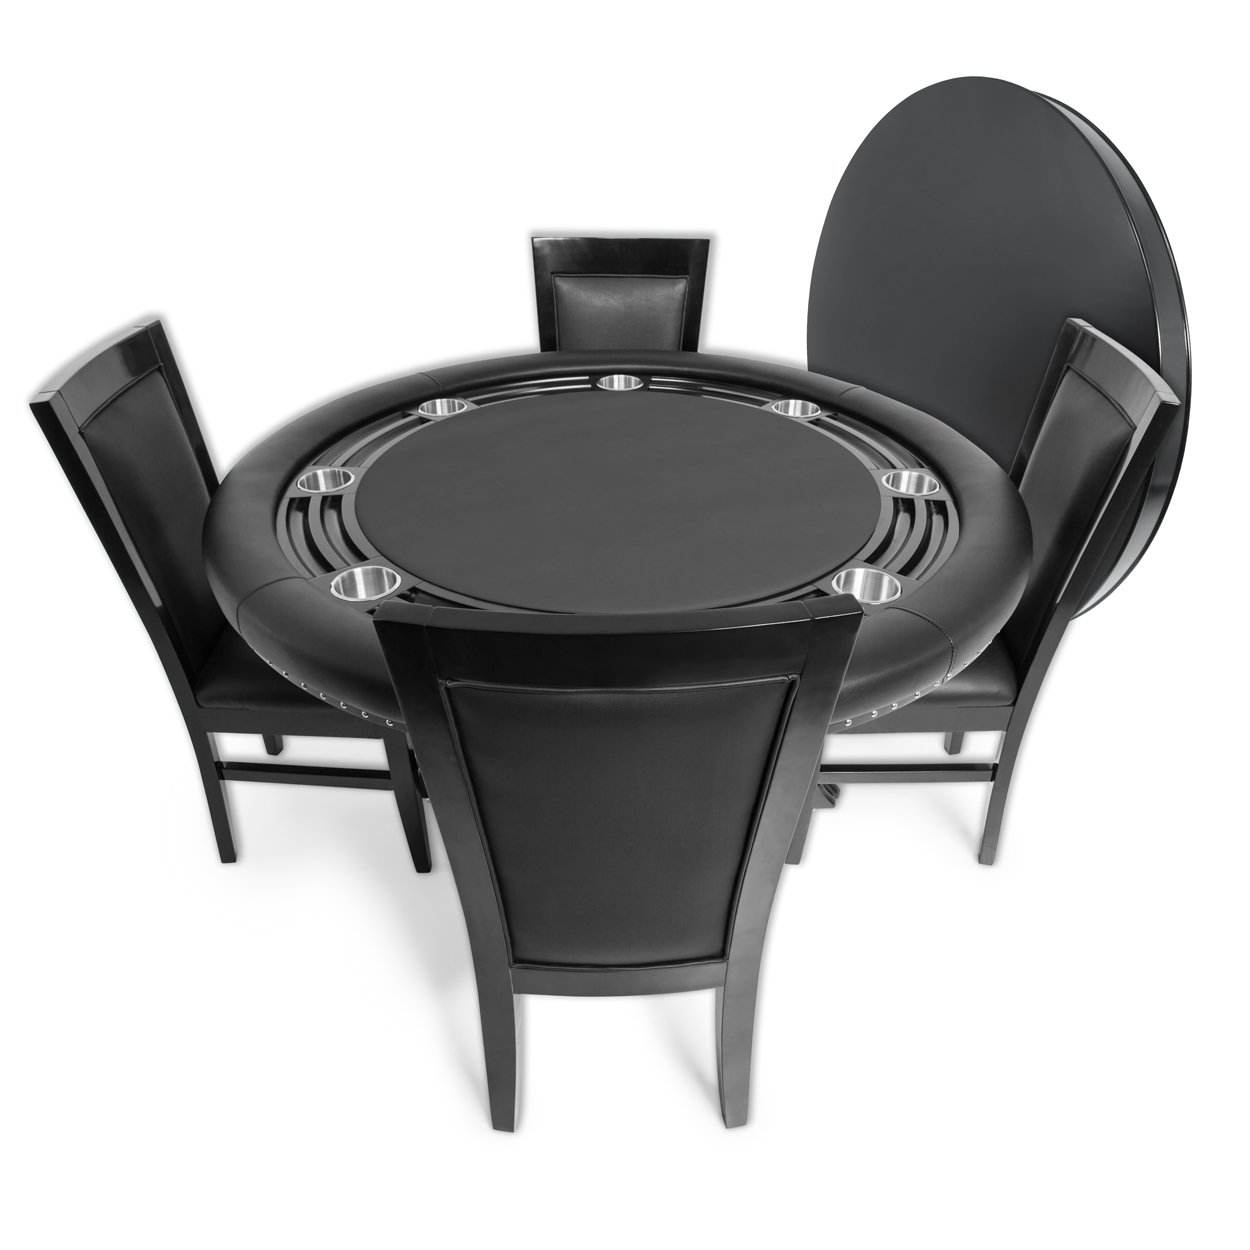 BBO Poker Nighthawk Poker Table for 8 Players with Black Felt Playing Surface, 55-Inch Round, Includes Matching Dining Top with 4 Dining Chairs by BBO Poker